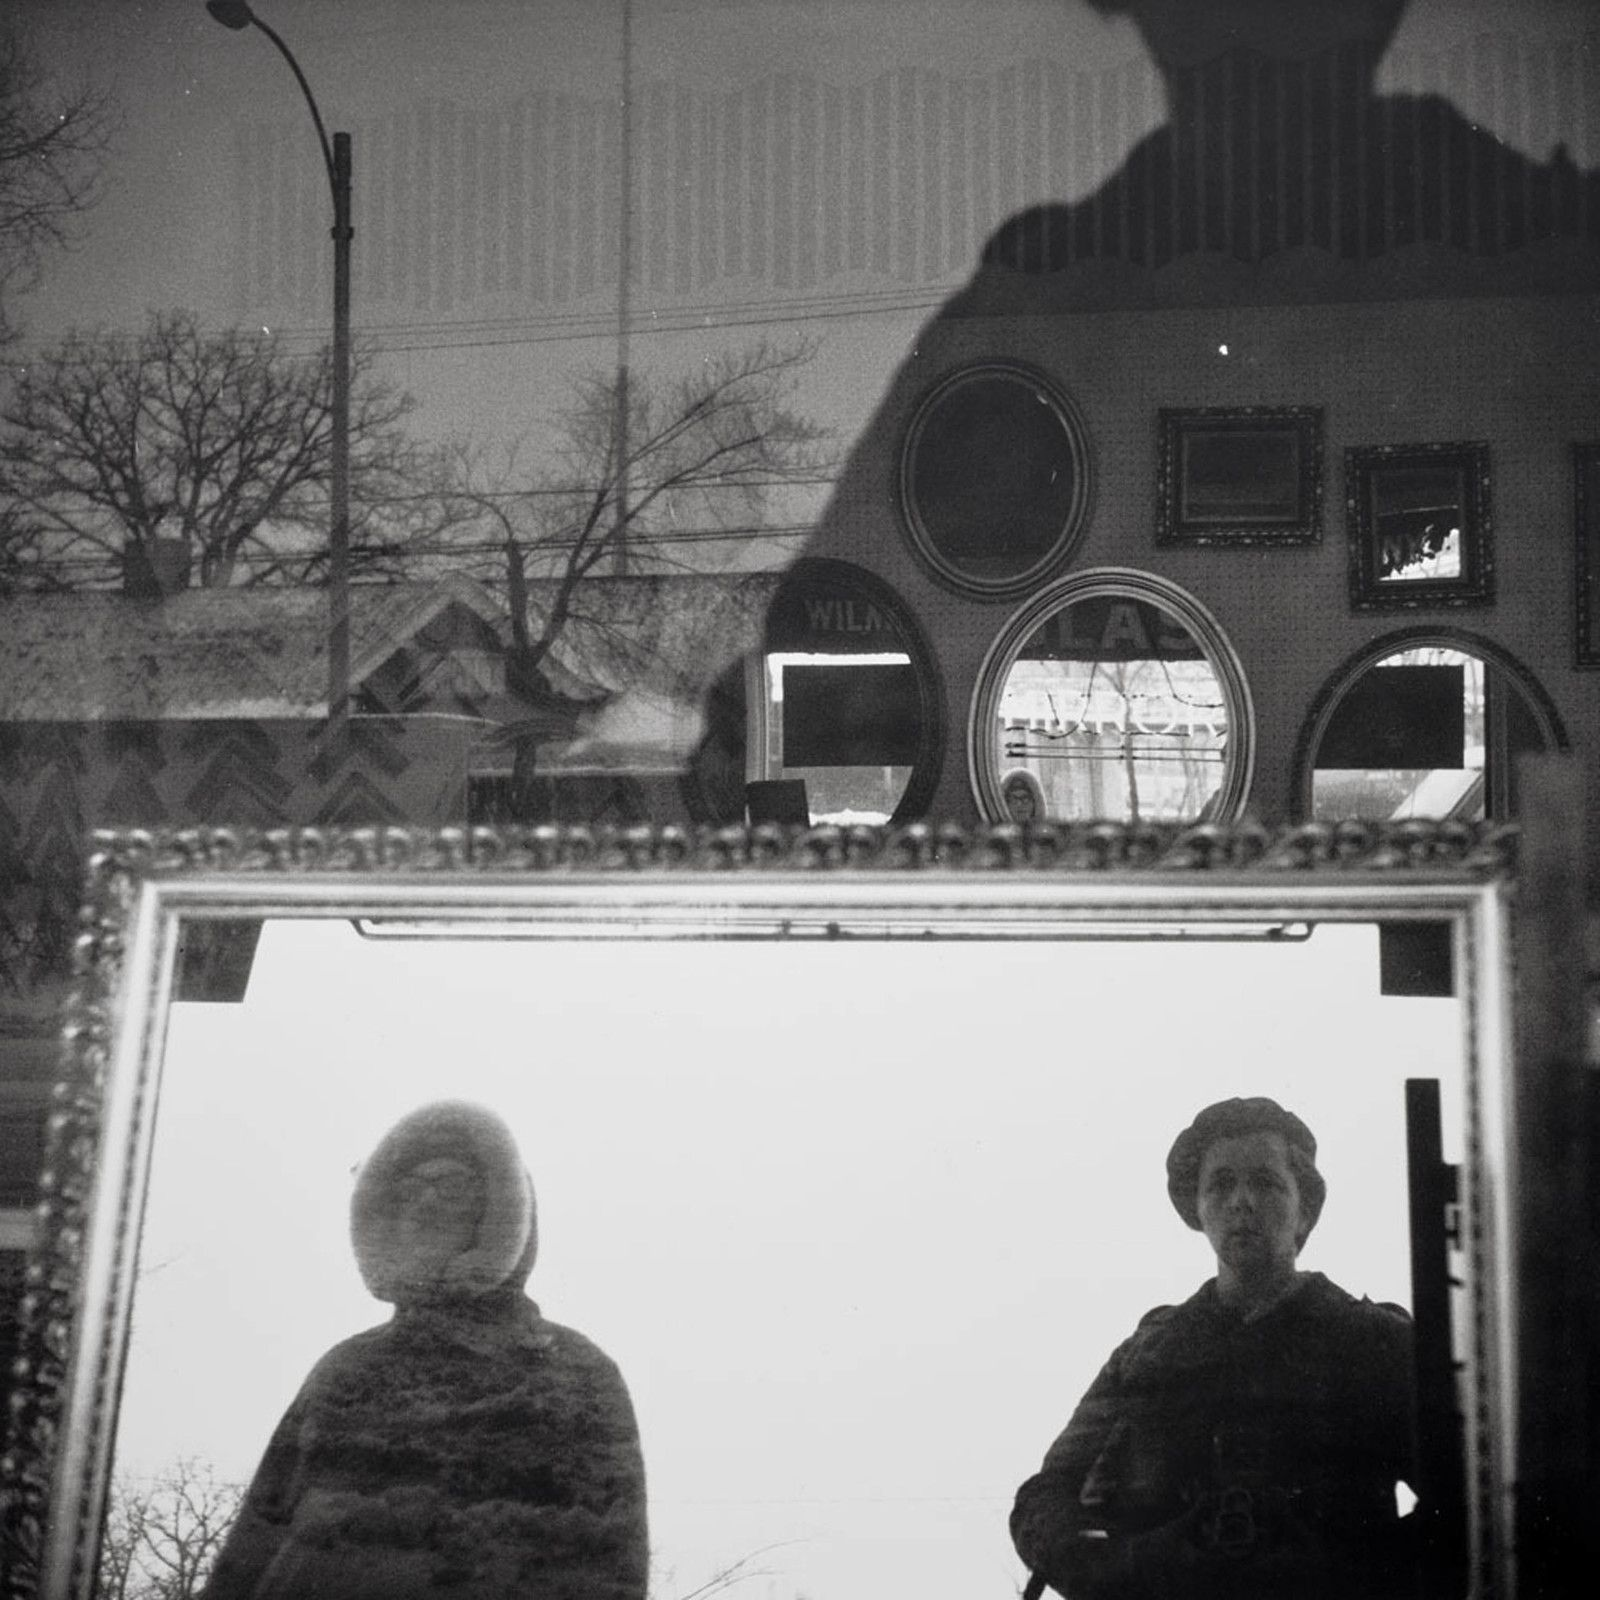 """Self-portrait, Chicago area"", c. 1970 de Vivian MAIER - Courtesy Les Douches la Galerie Paris"